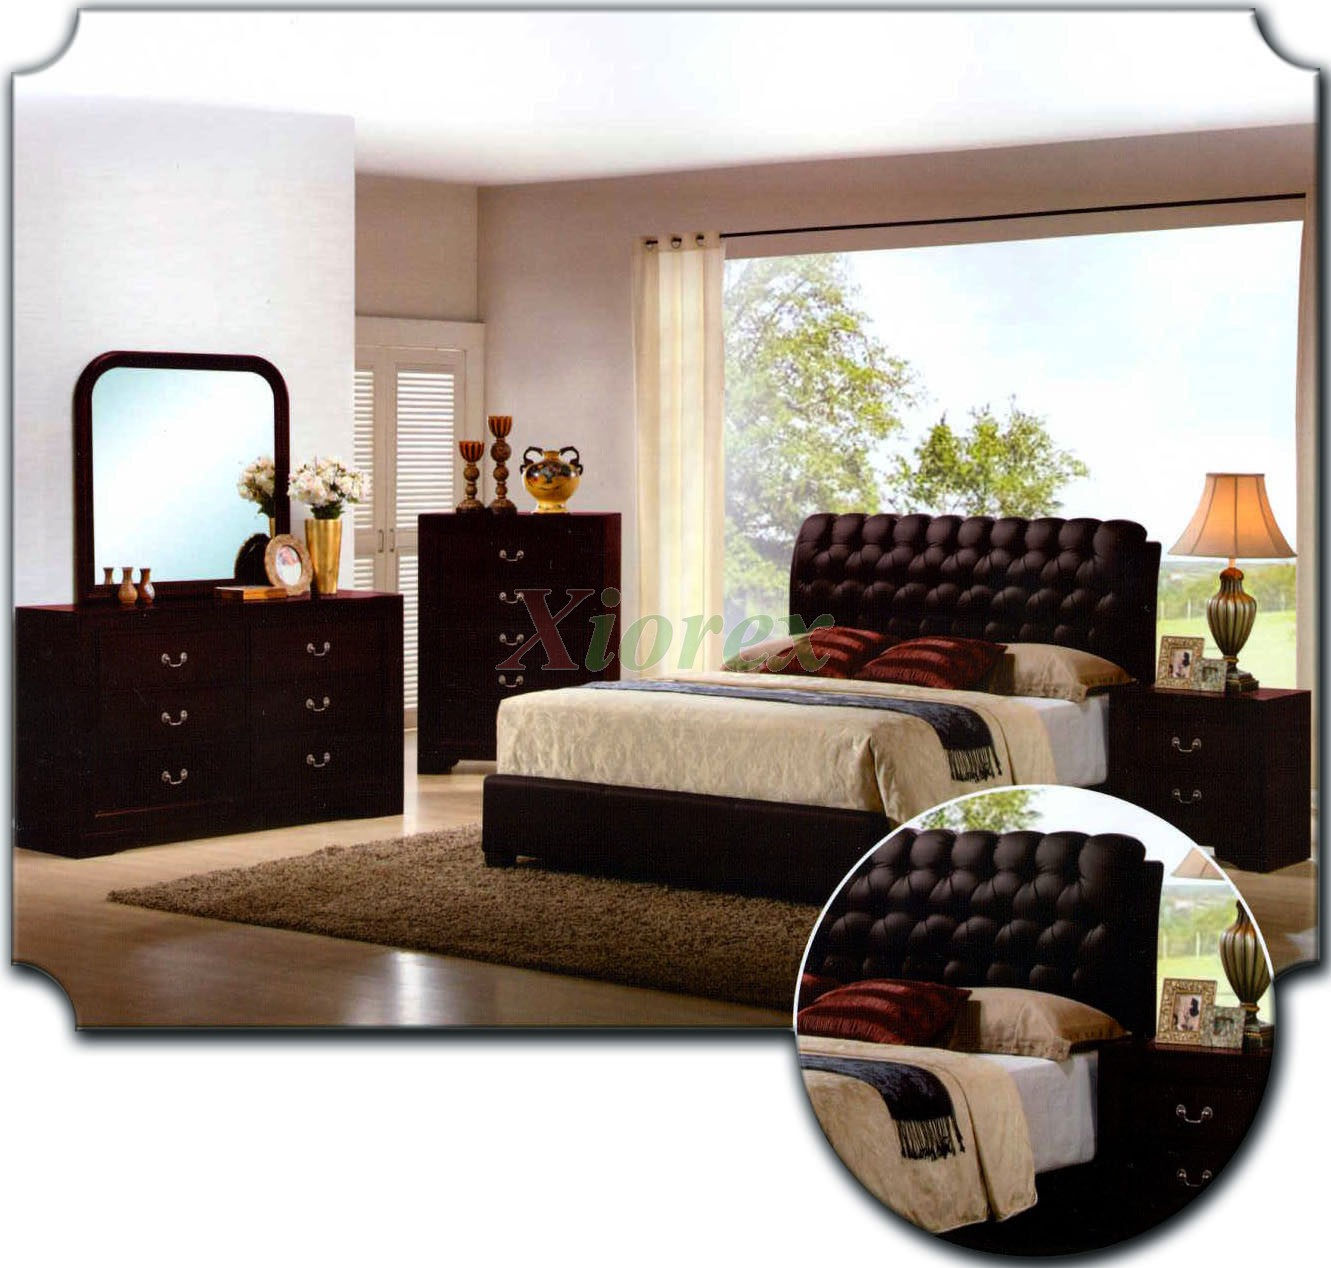 upholstered bedroom furniture set w tufted headboard beds 162 | xiorex